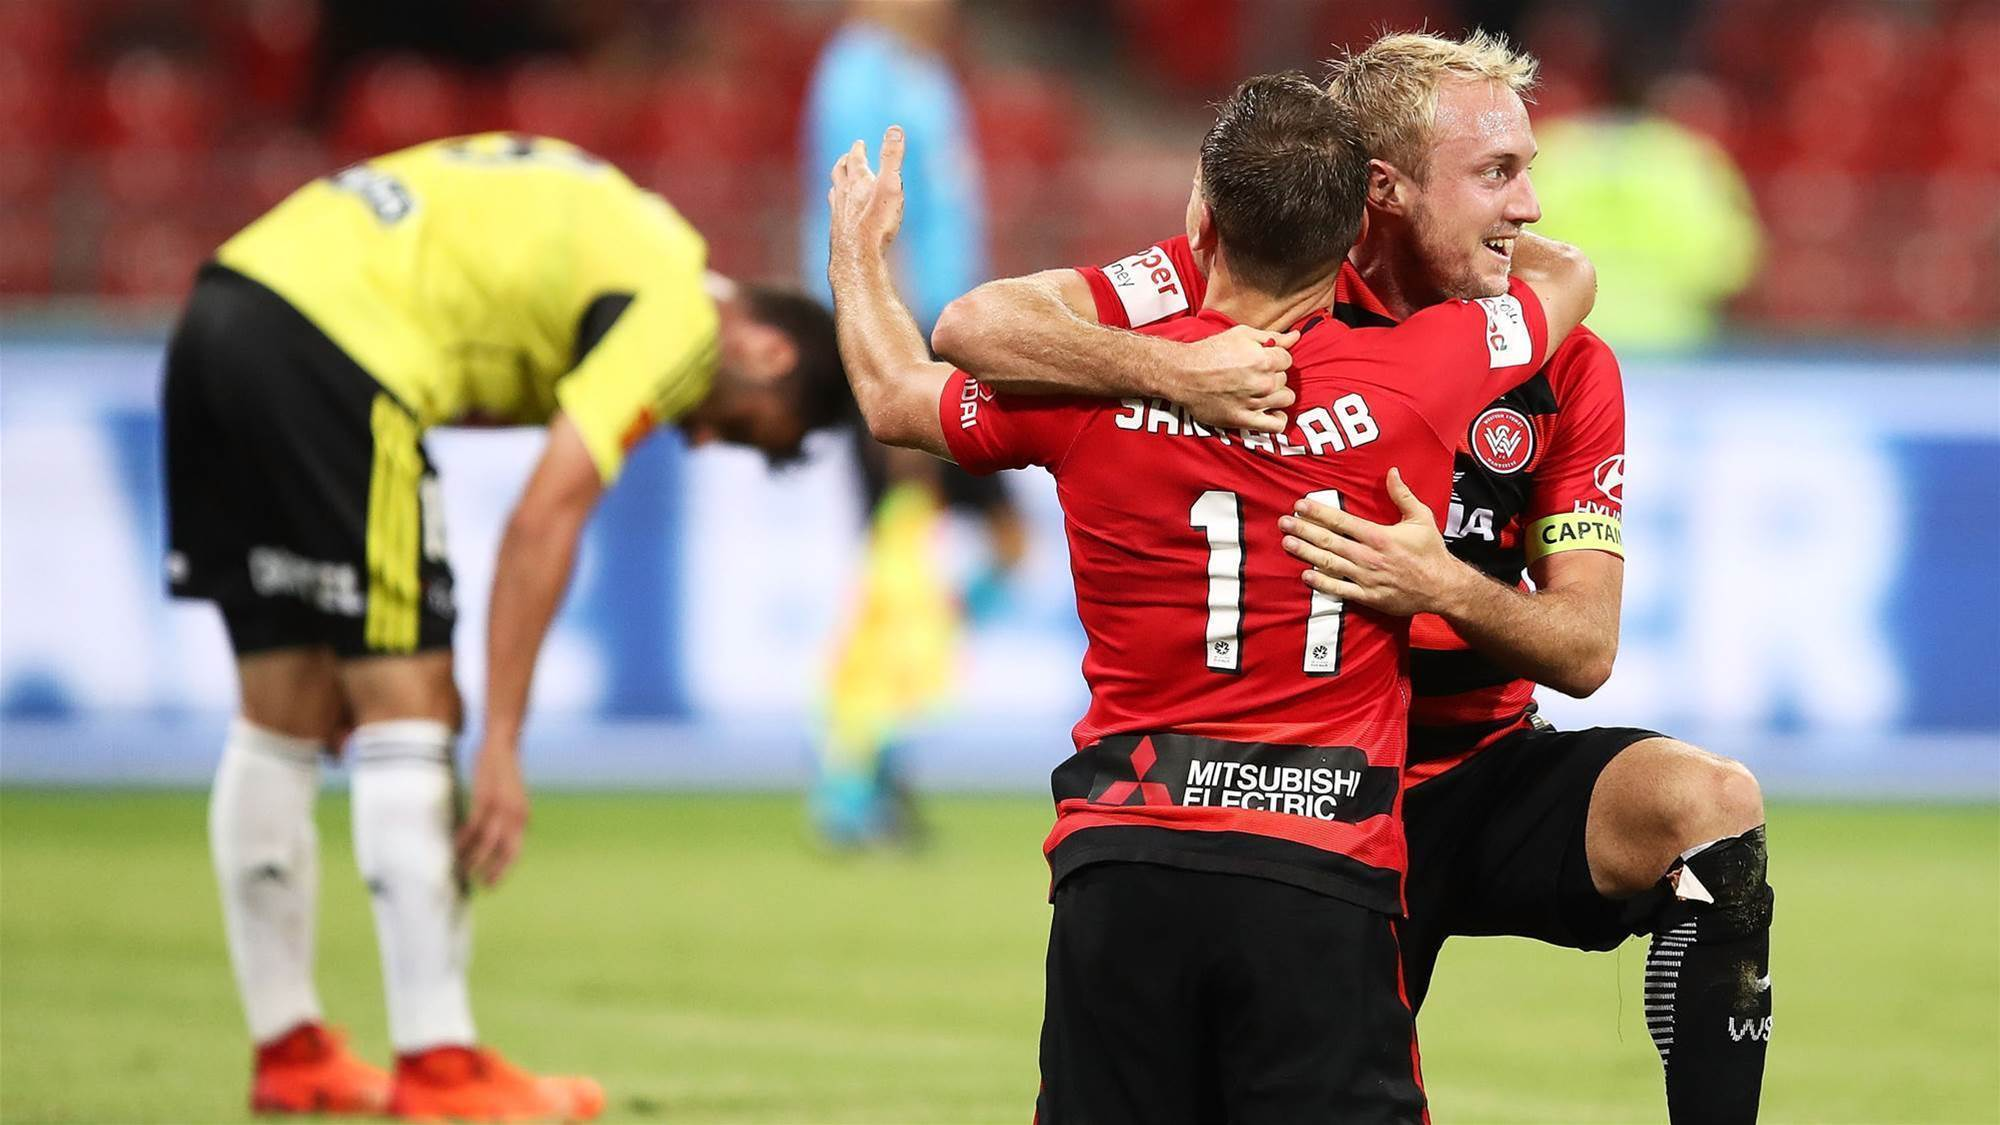 Wanderers clinch first Spotless win